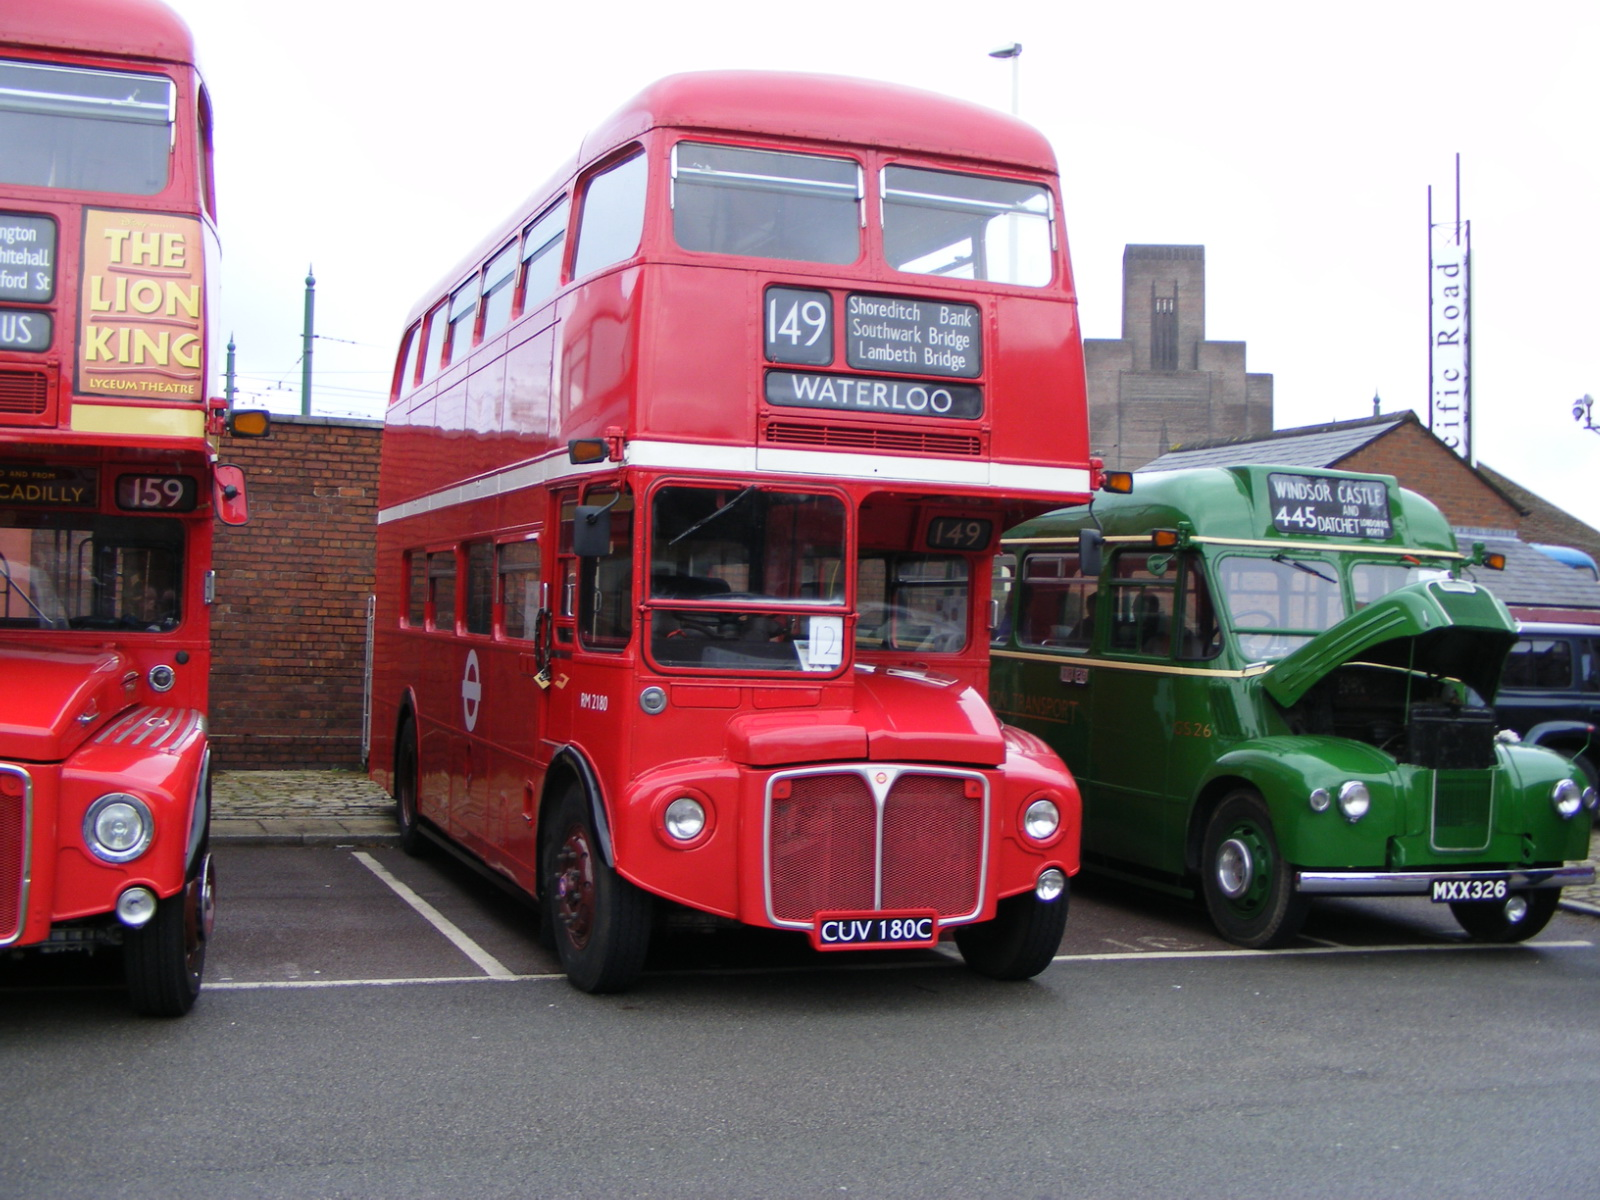 File:London Transport RM 2180 CUV 180C.jpg